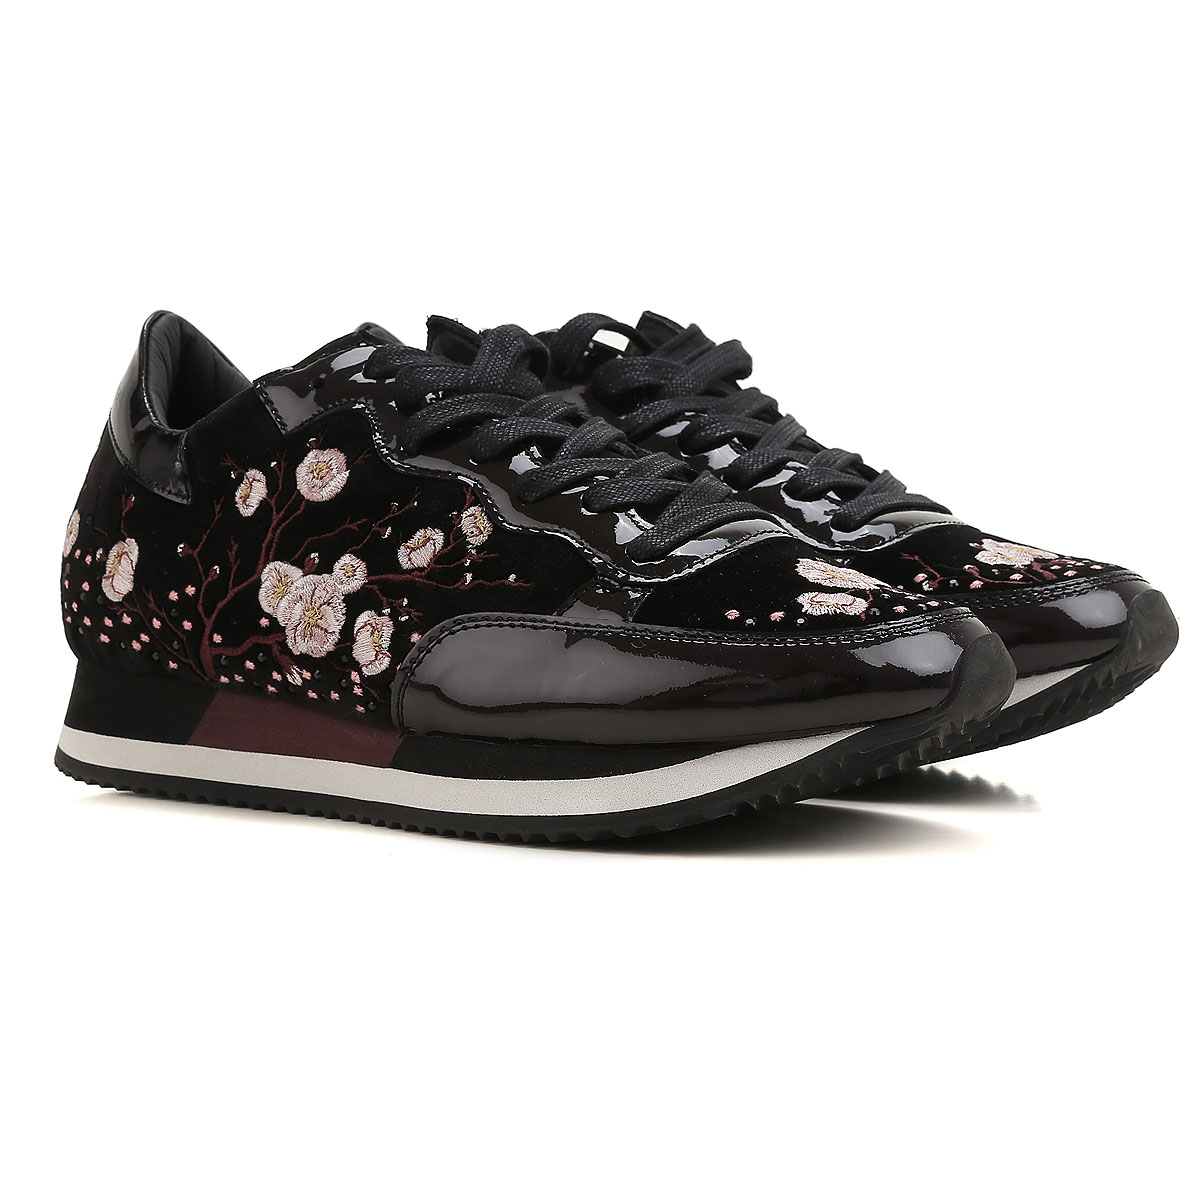 Philippe Model Sneakers for Women On Sale in Outlet, Black, Patent, 2019, 3.5 4.5 6.5